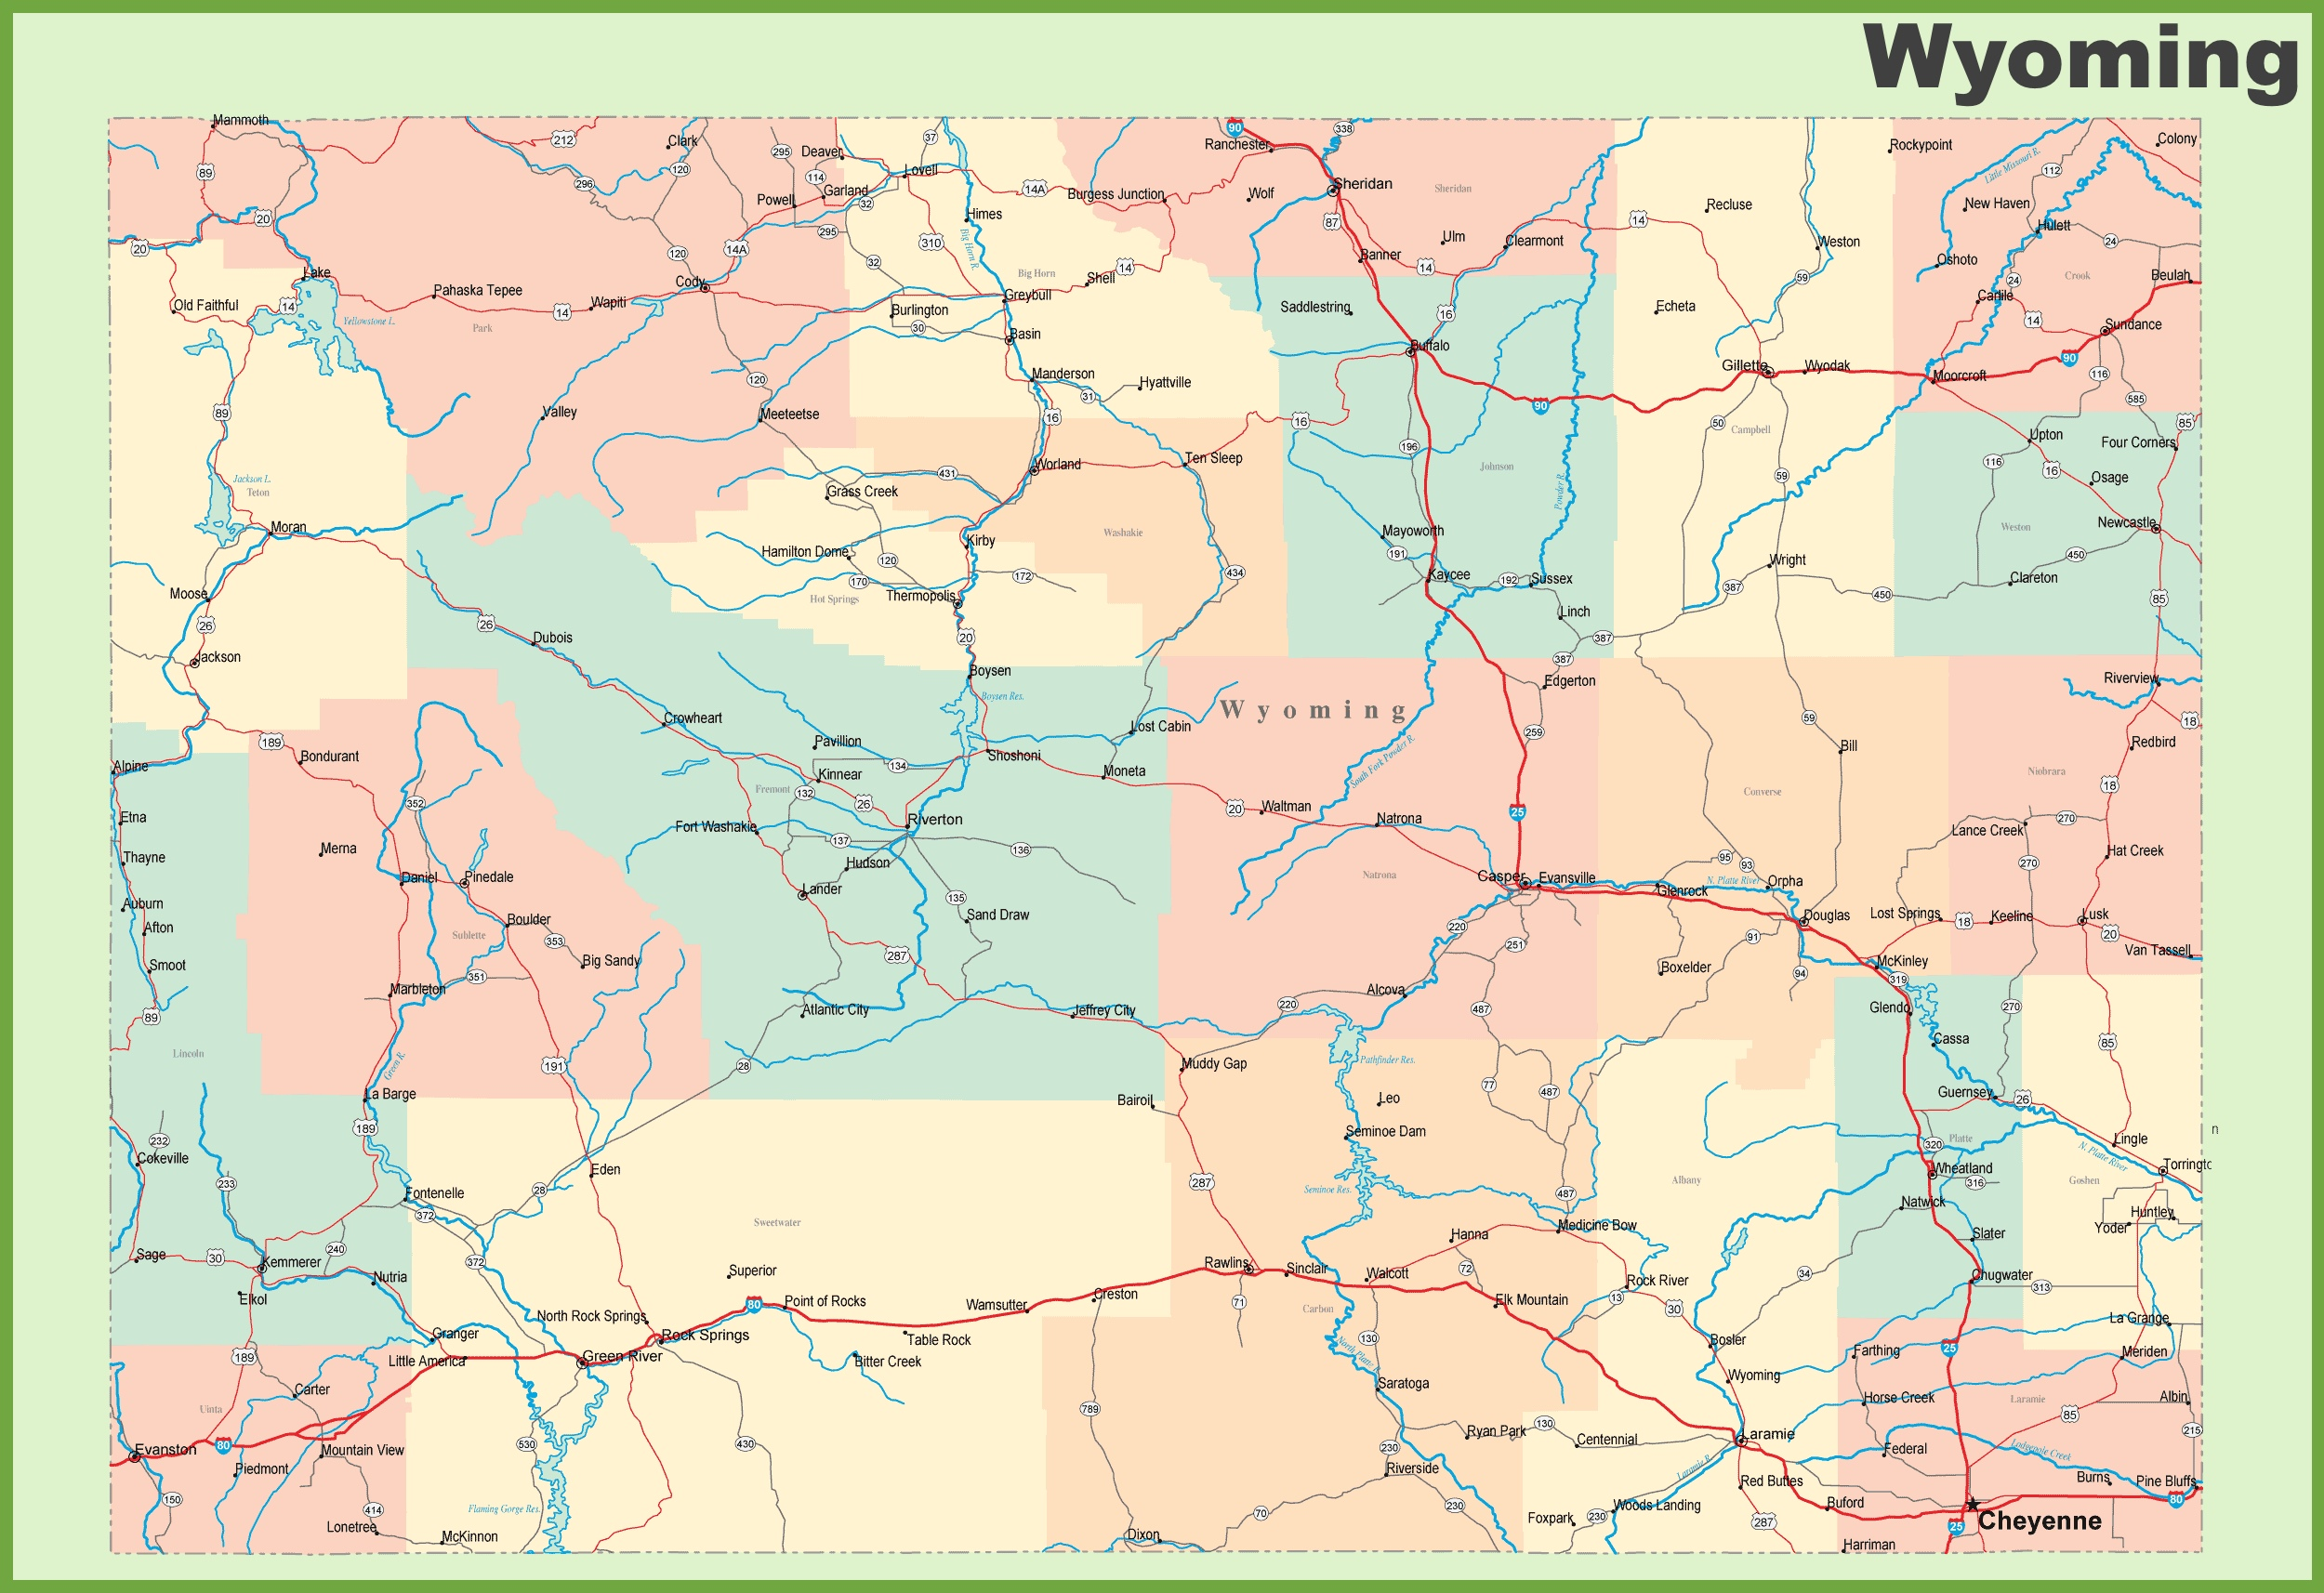 Road Map Of Wyoming With Cities - Cities in wyoming map